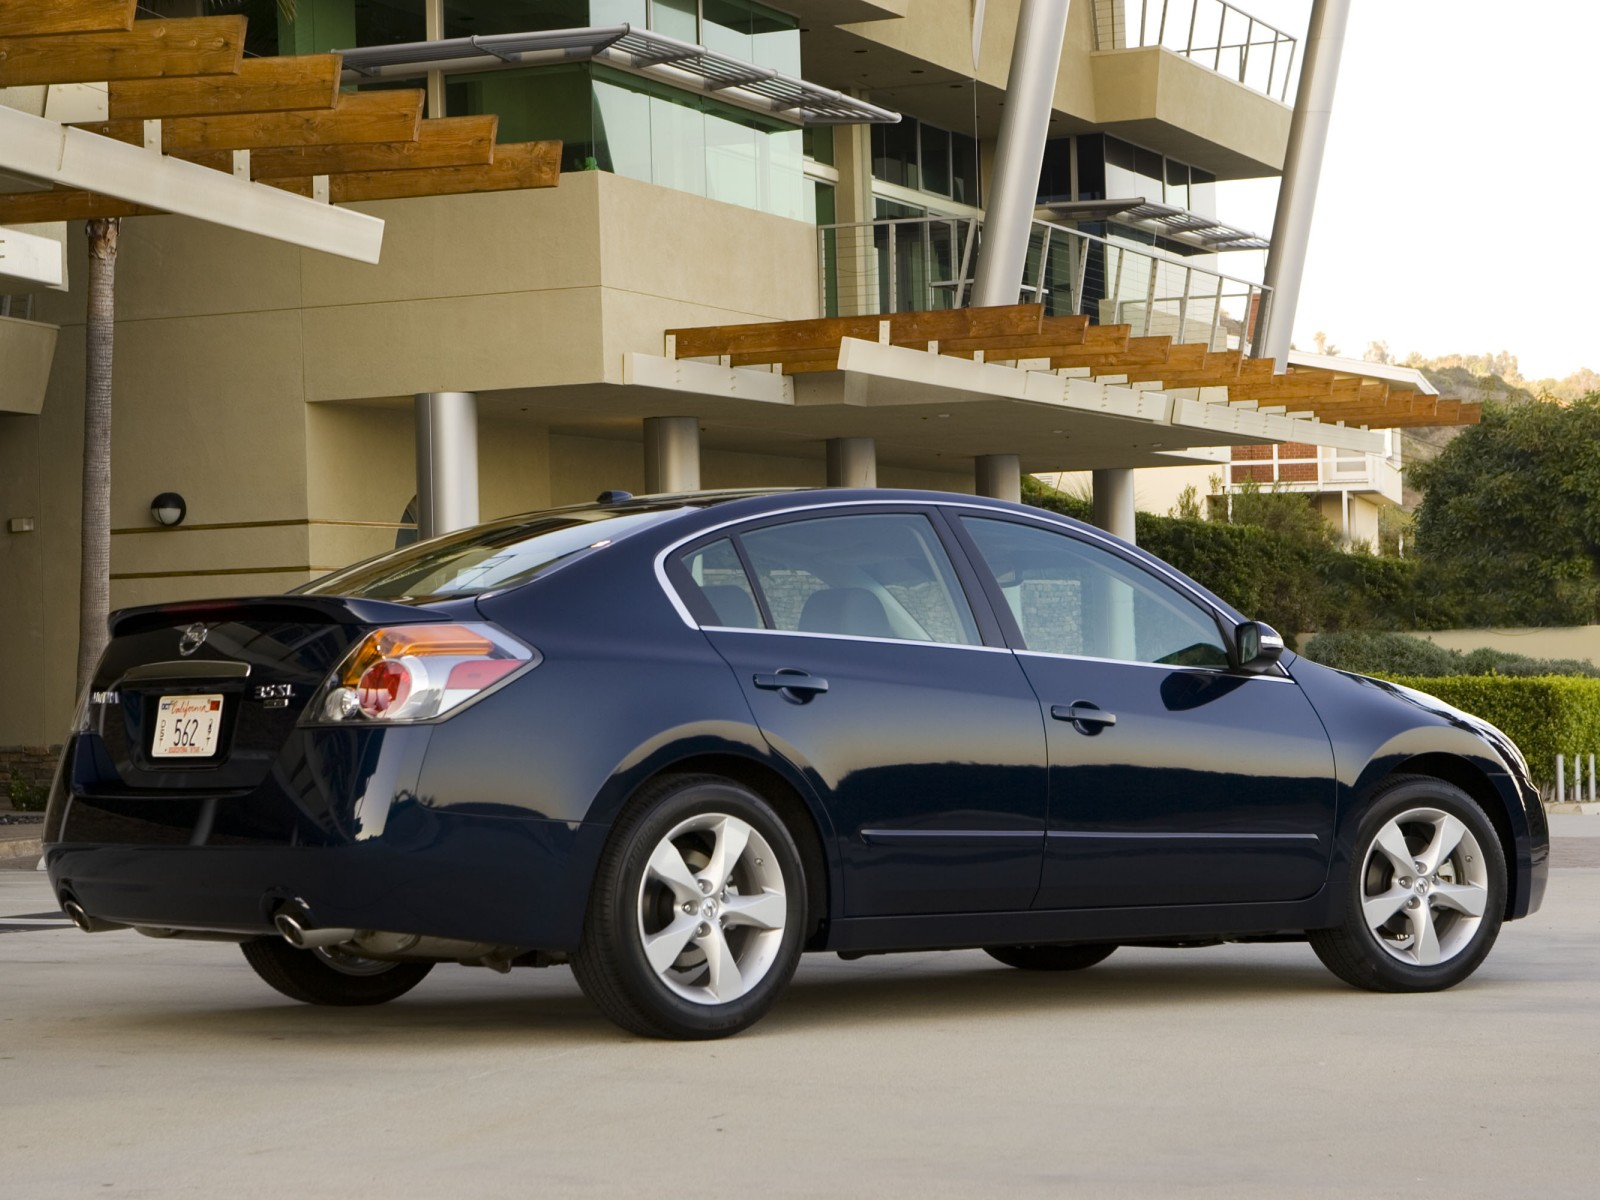 2009 nissan altima black sedan gallery hd cars wallpaper 2009 nissan altima black images hd cars wallpaper 2009 nissan altima vct 20 inch wheels creative vanachro Images